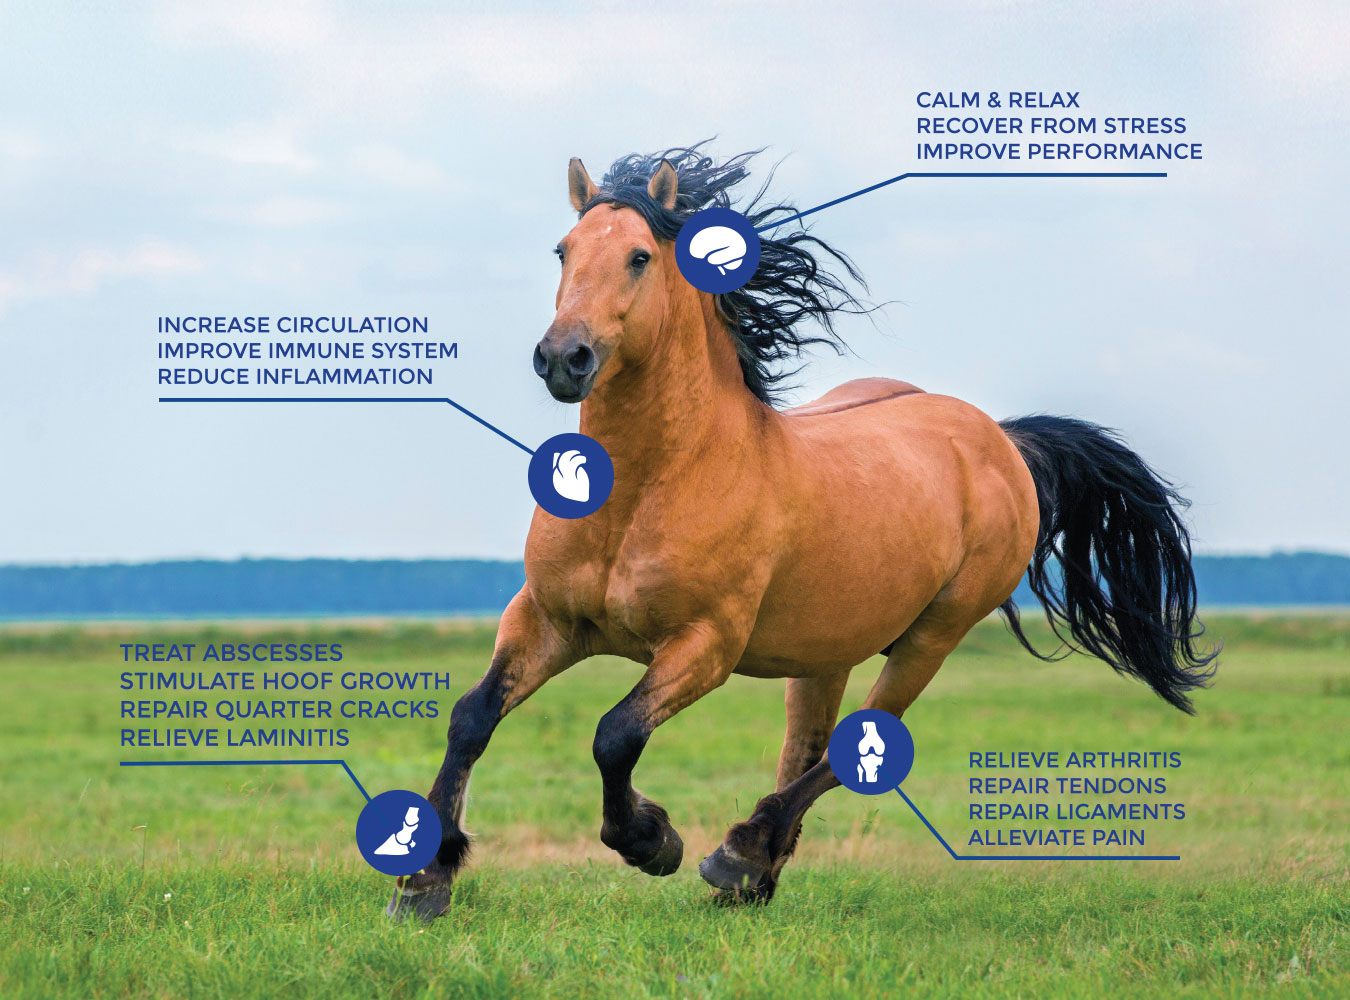 Increase Circulation, improve immune system, reduce inflammation, calm & relax, recover from stress, improve performance, relieve arthritis, repair tendons, repair ligaments, alleviate pain, treat abscesses, stimulate hoof growth, repair quarter cracks, and relieve laminitis.